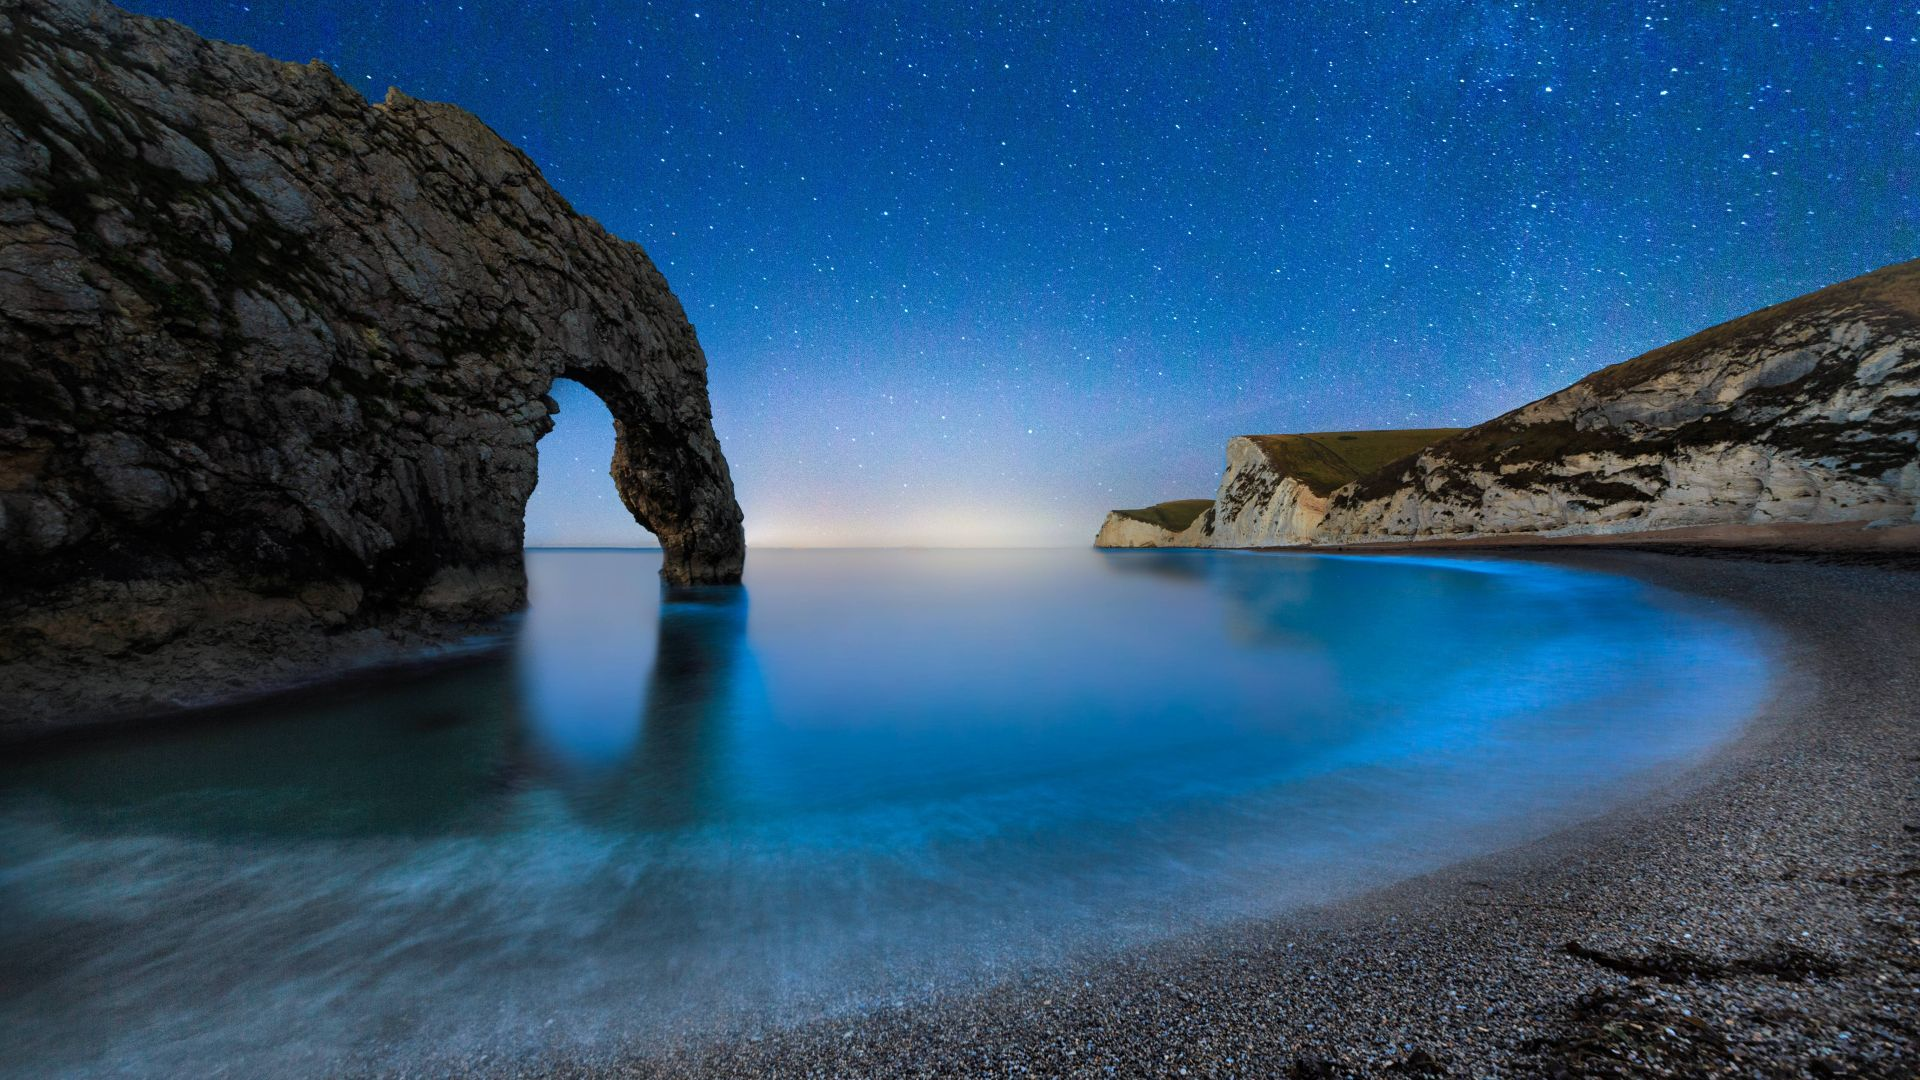 Durdle Door, 5k, 4k wallpaper, beach, night, stars, sea, England (horizontal)